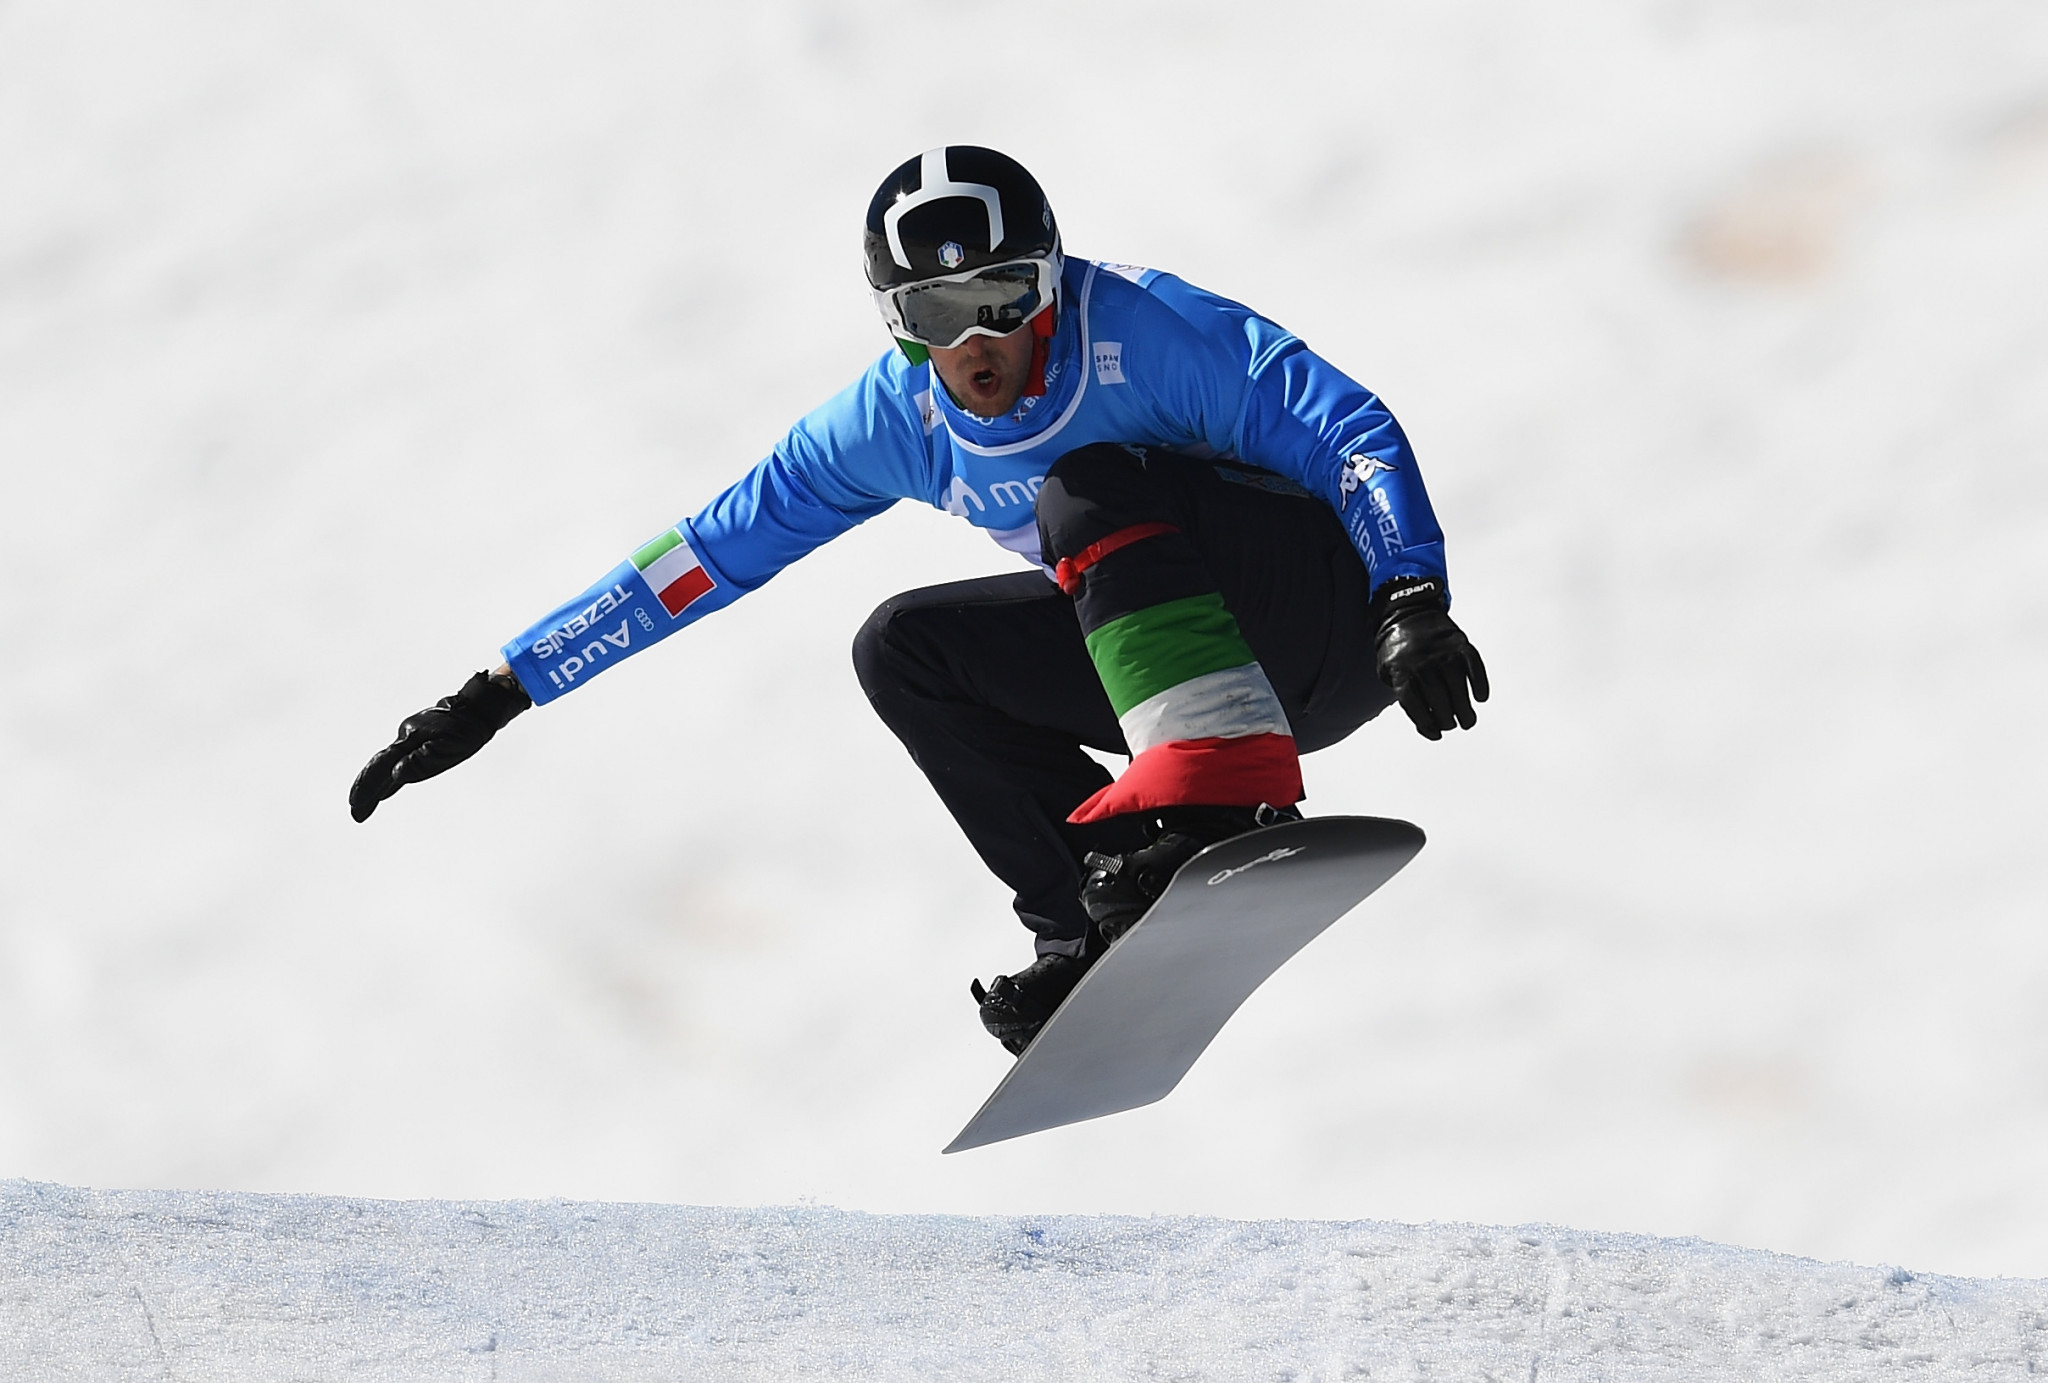 Italy lead qualifying at Snowboard Cross World Cup in Feldberg